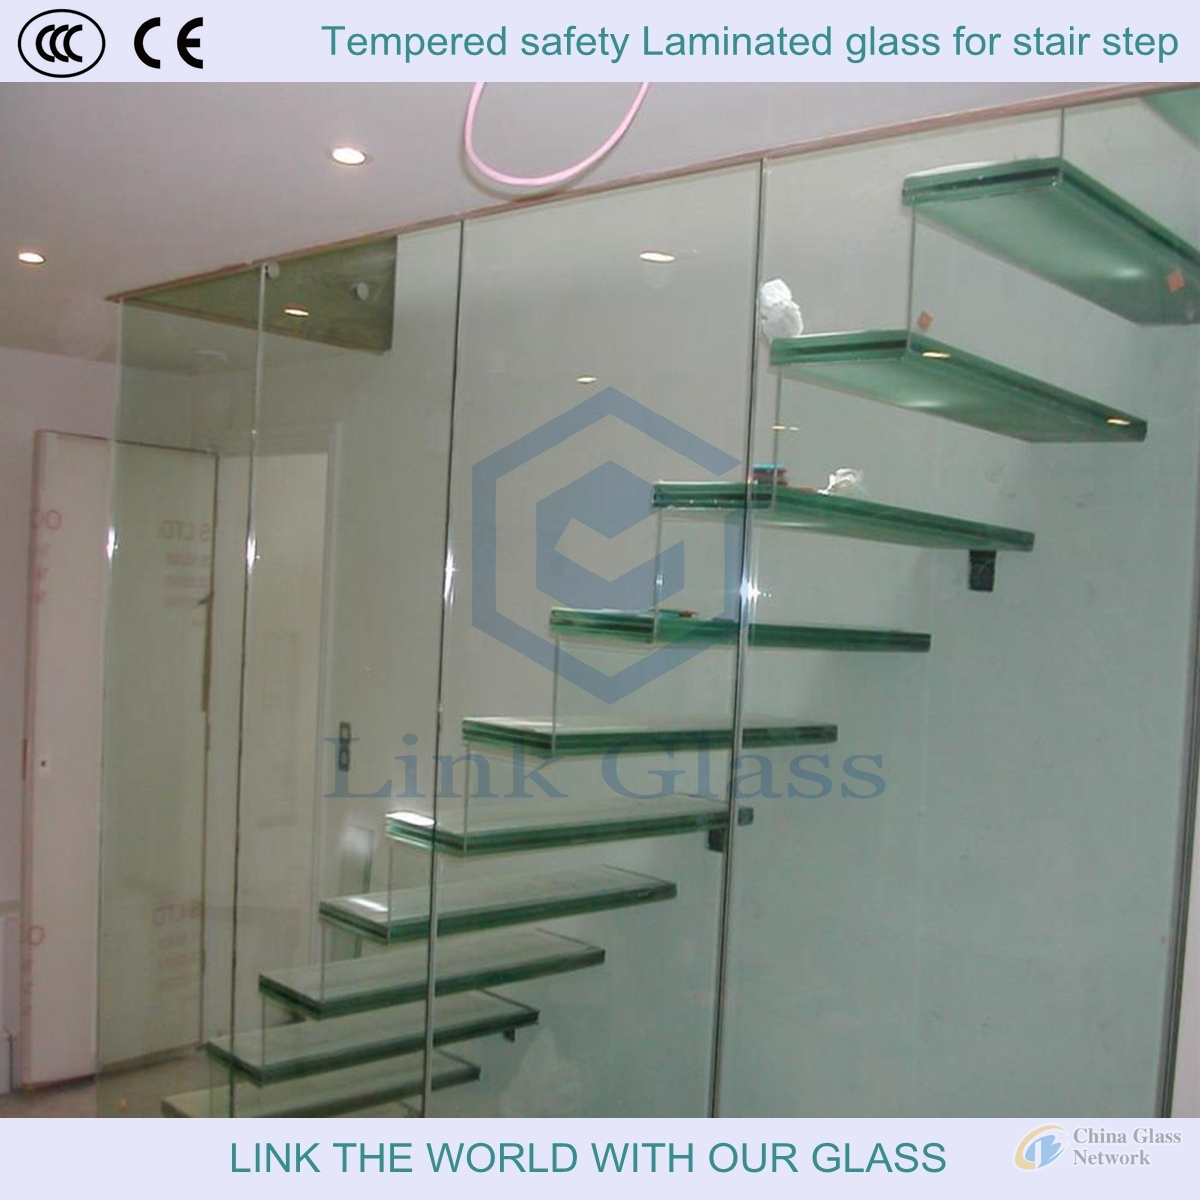 Tempered Safety Laminated Glass For Ceilings Fenceslaminated Glass